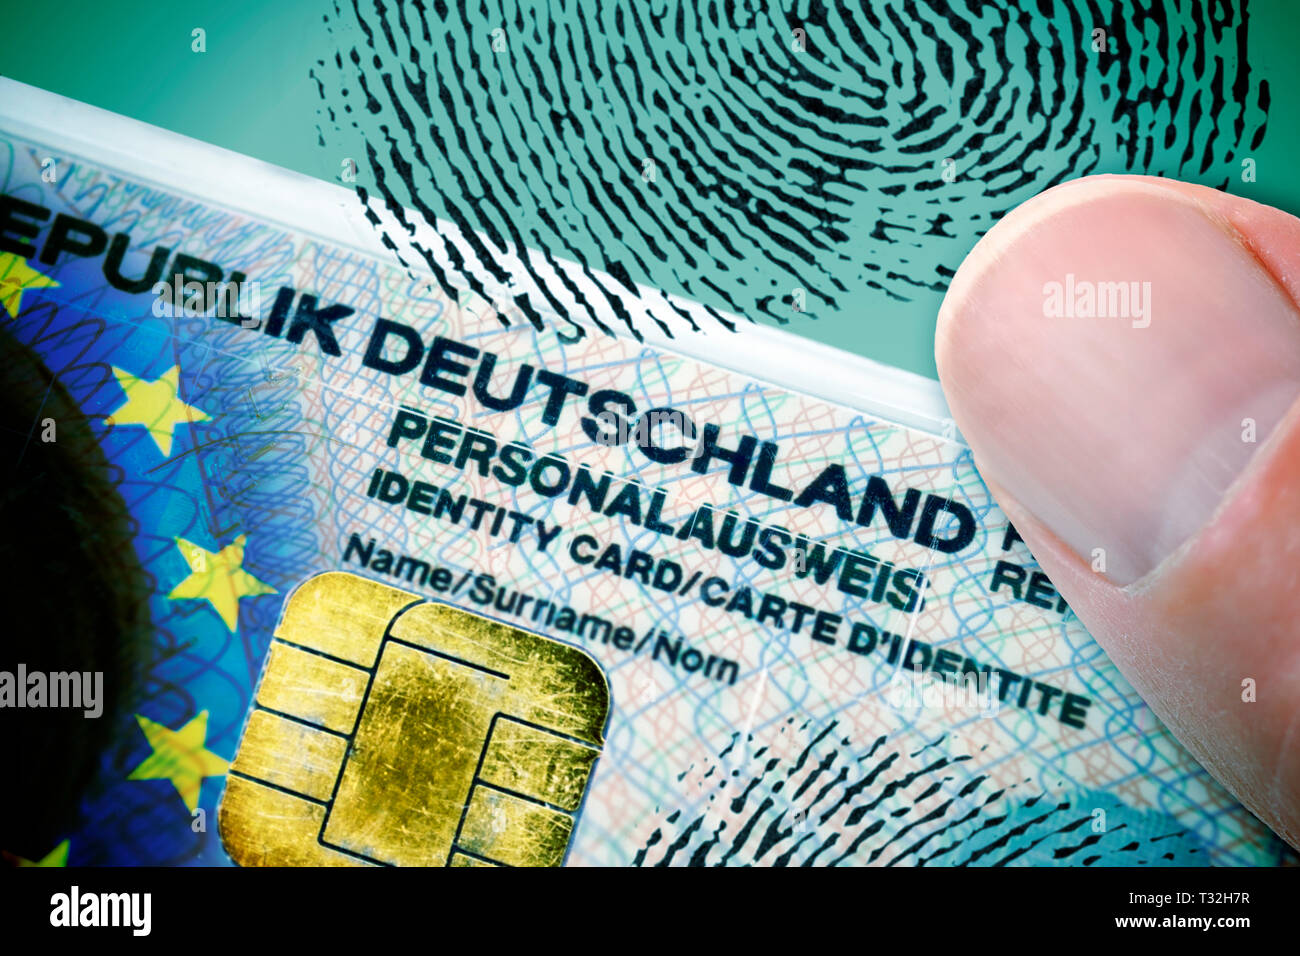 PHOTOMONTAGE, finger on German identity card with EU flag, data chip and fingerprint, FOTOMONTAGE, Finger auf deutschem Personalausweis mit EU-Fahne,  Stock Photo